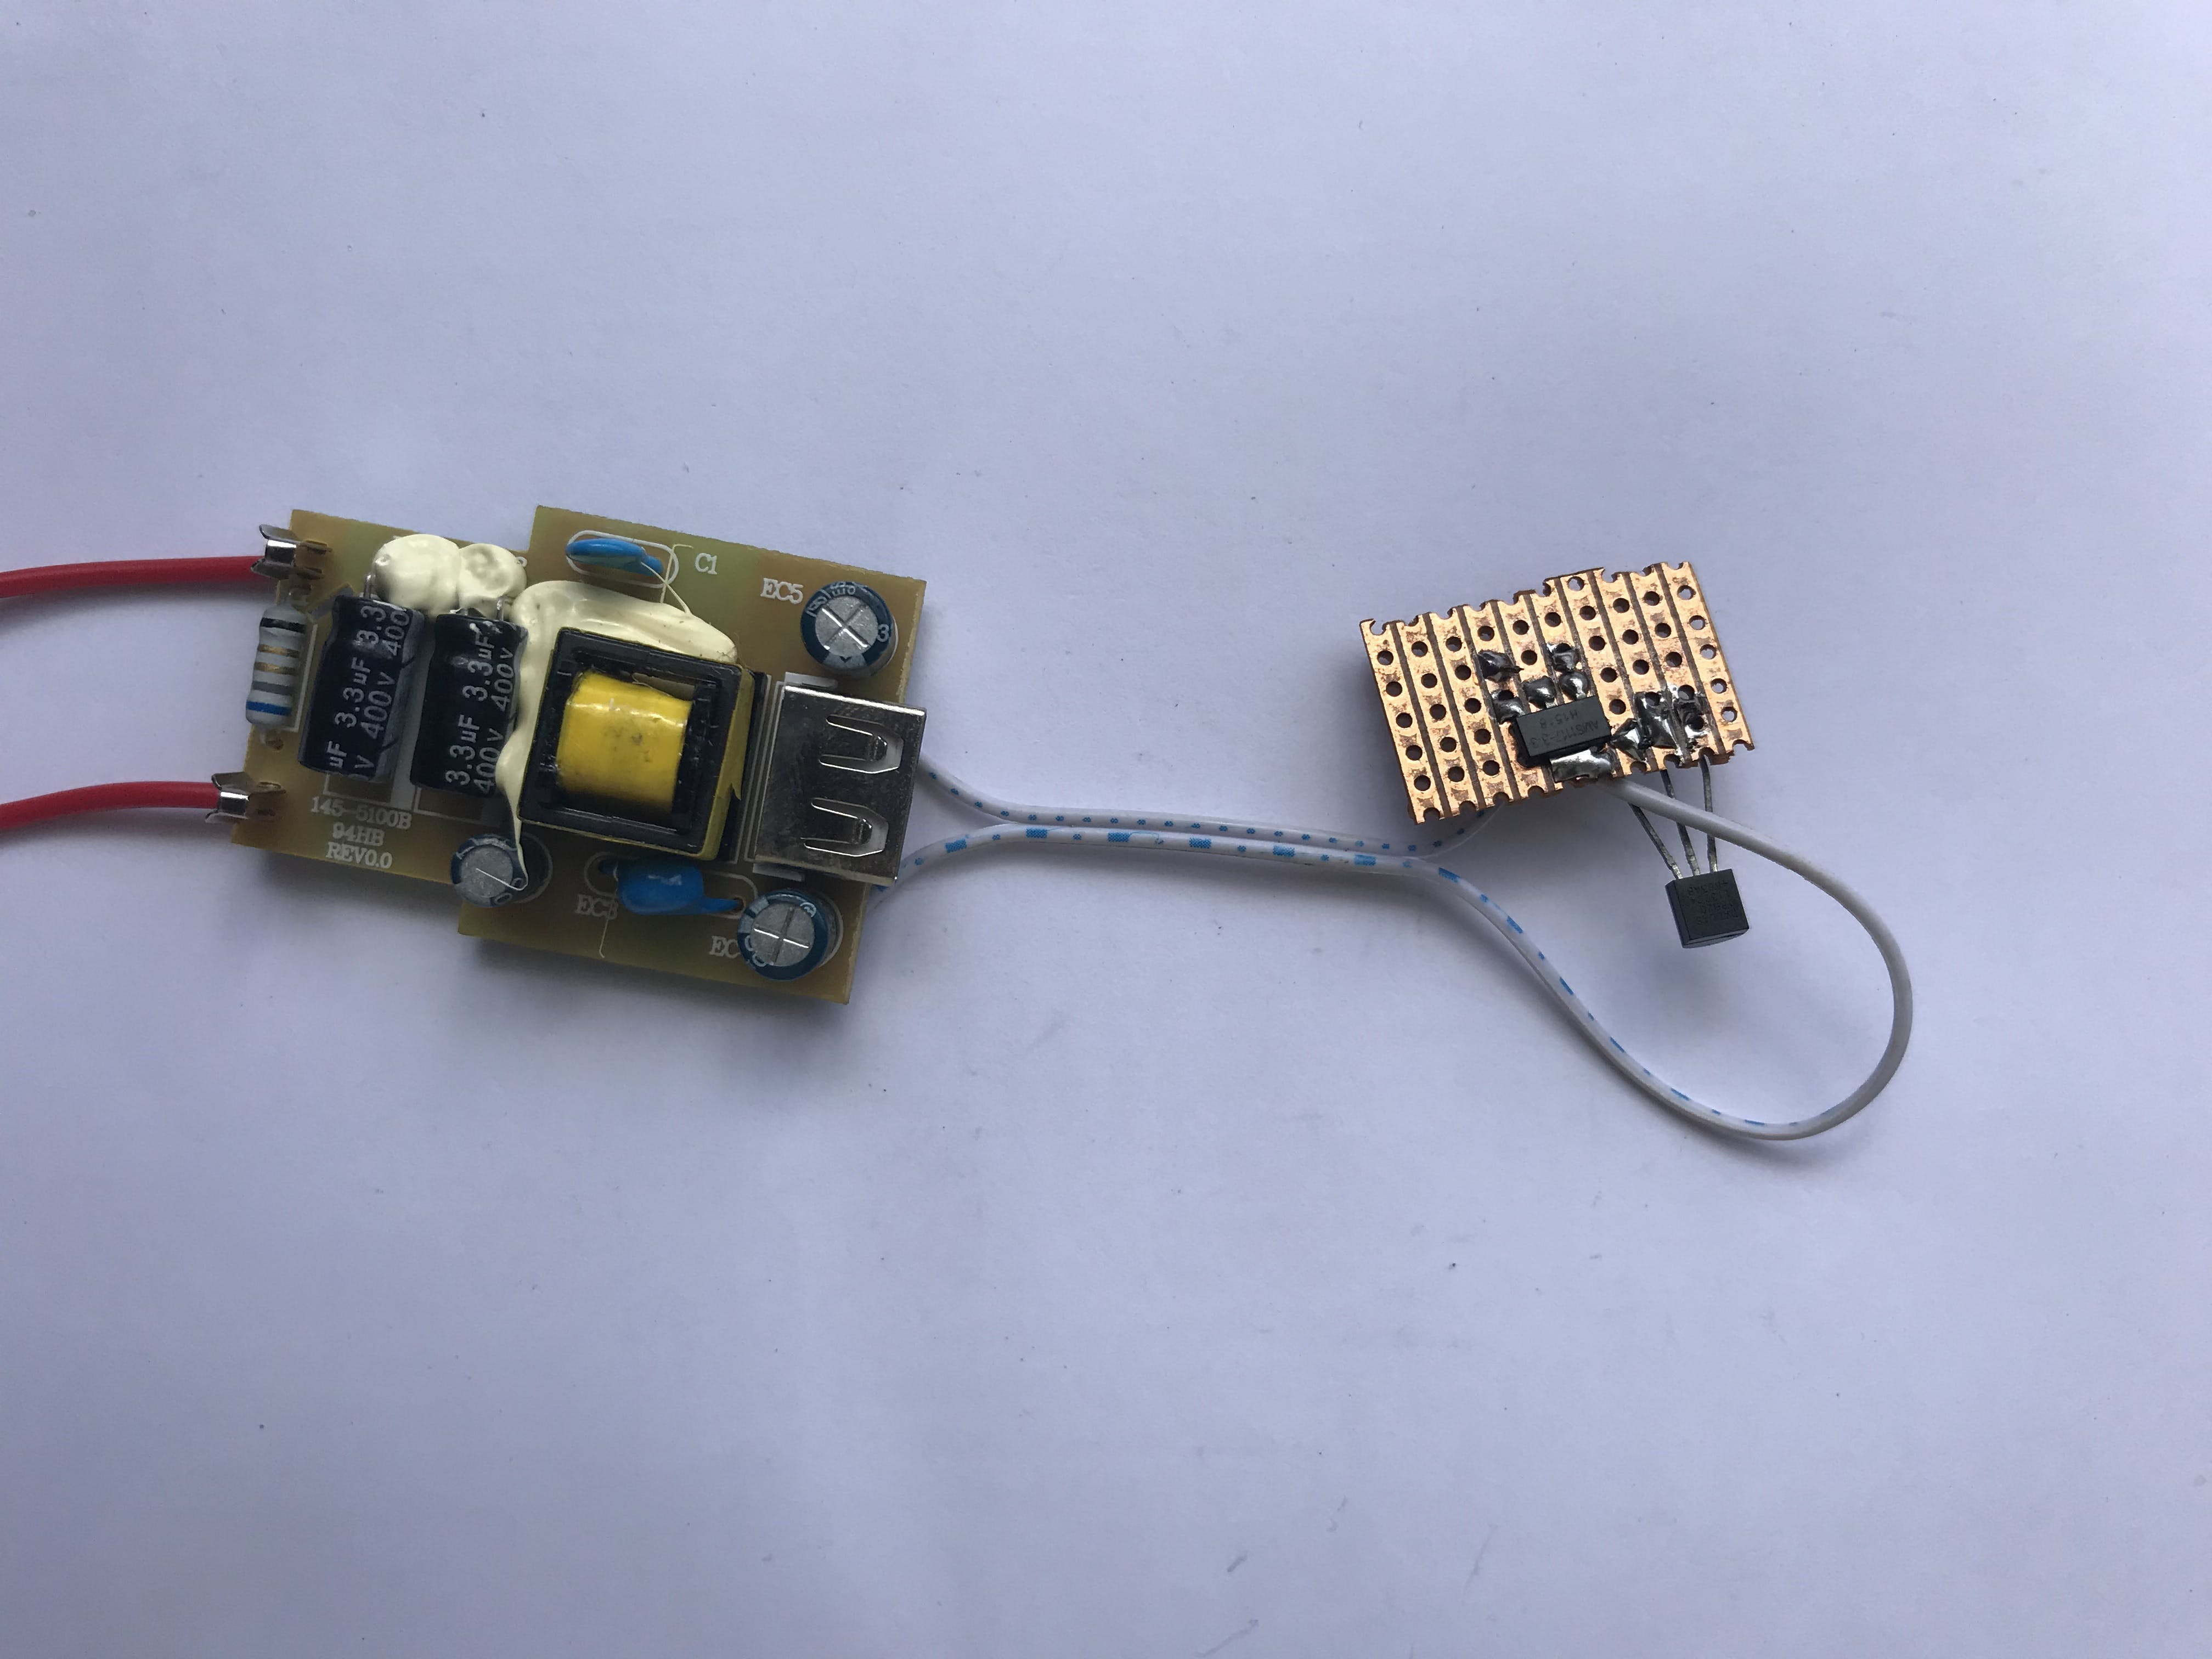 Connecting regulator to the charger